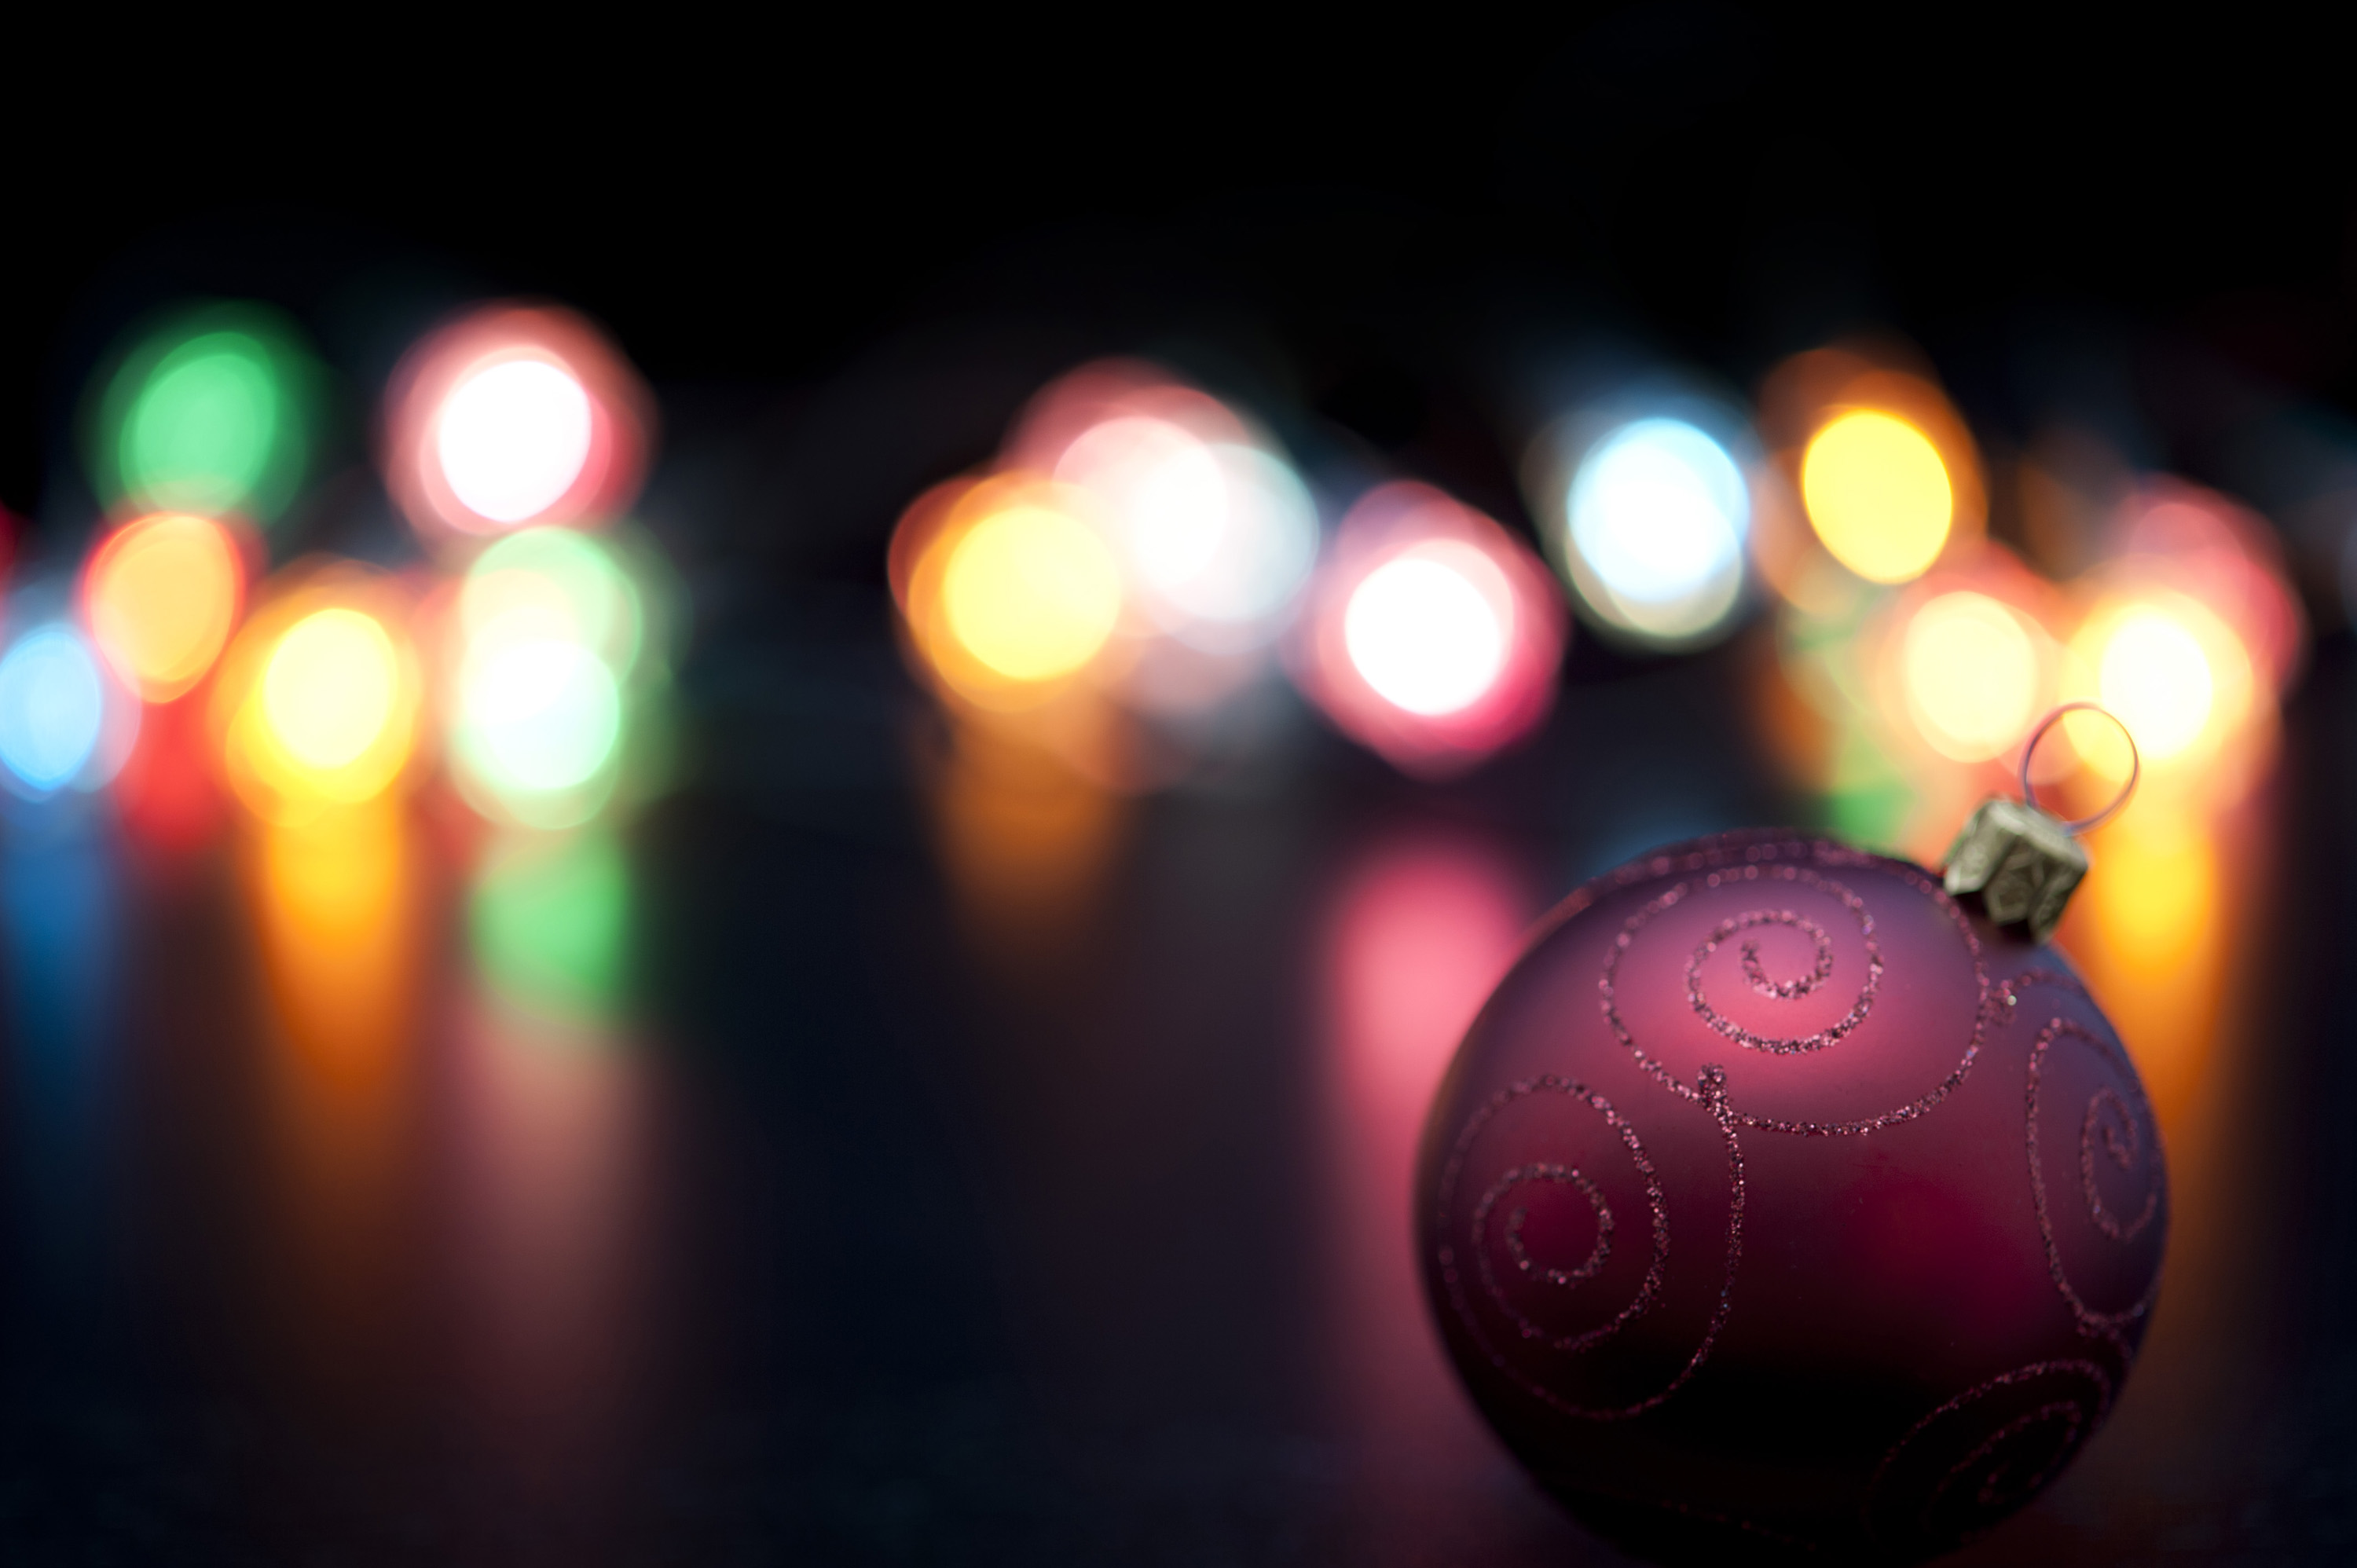 Focus to a single decorative maroon Christmas bauble in the foreground with a colourful Christmas lights bokeh backdrop